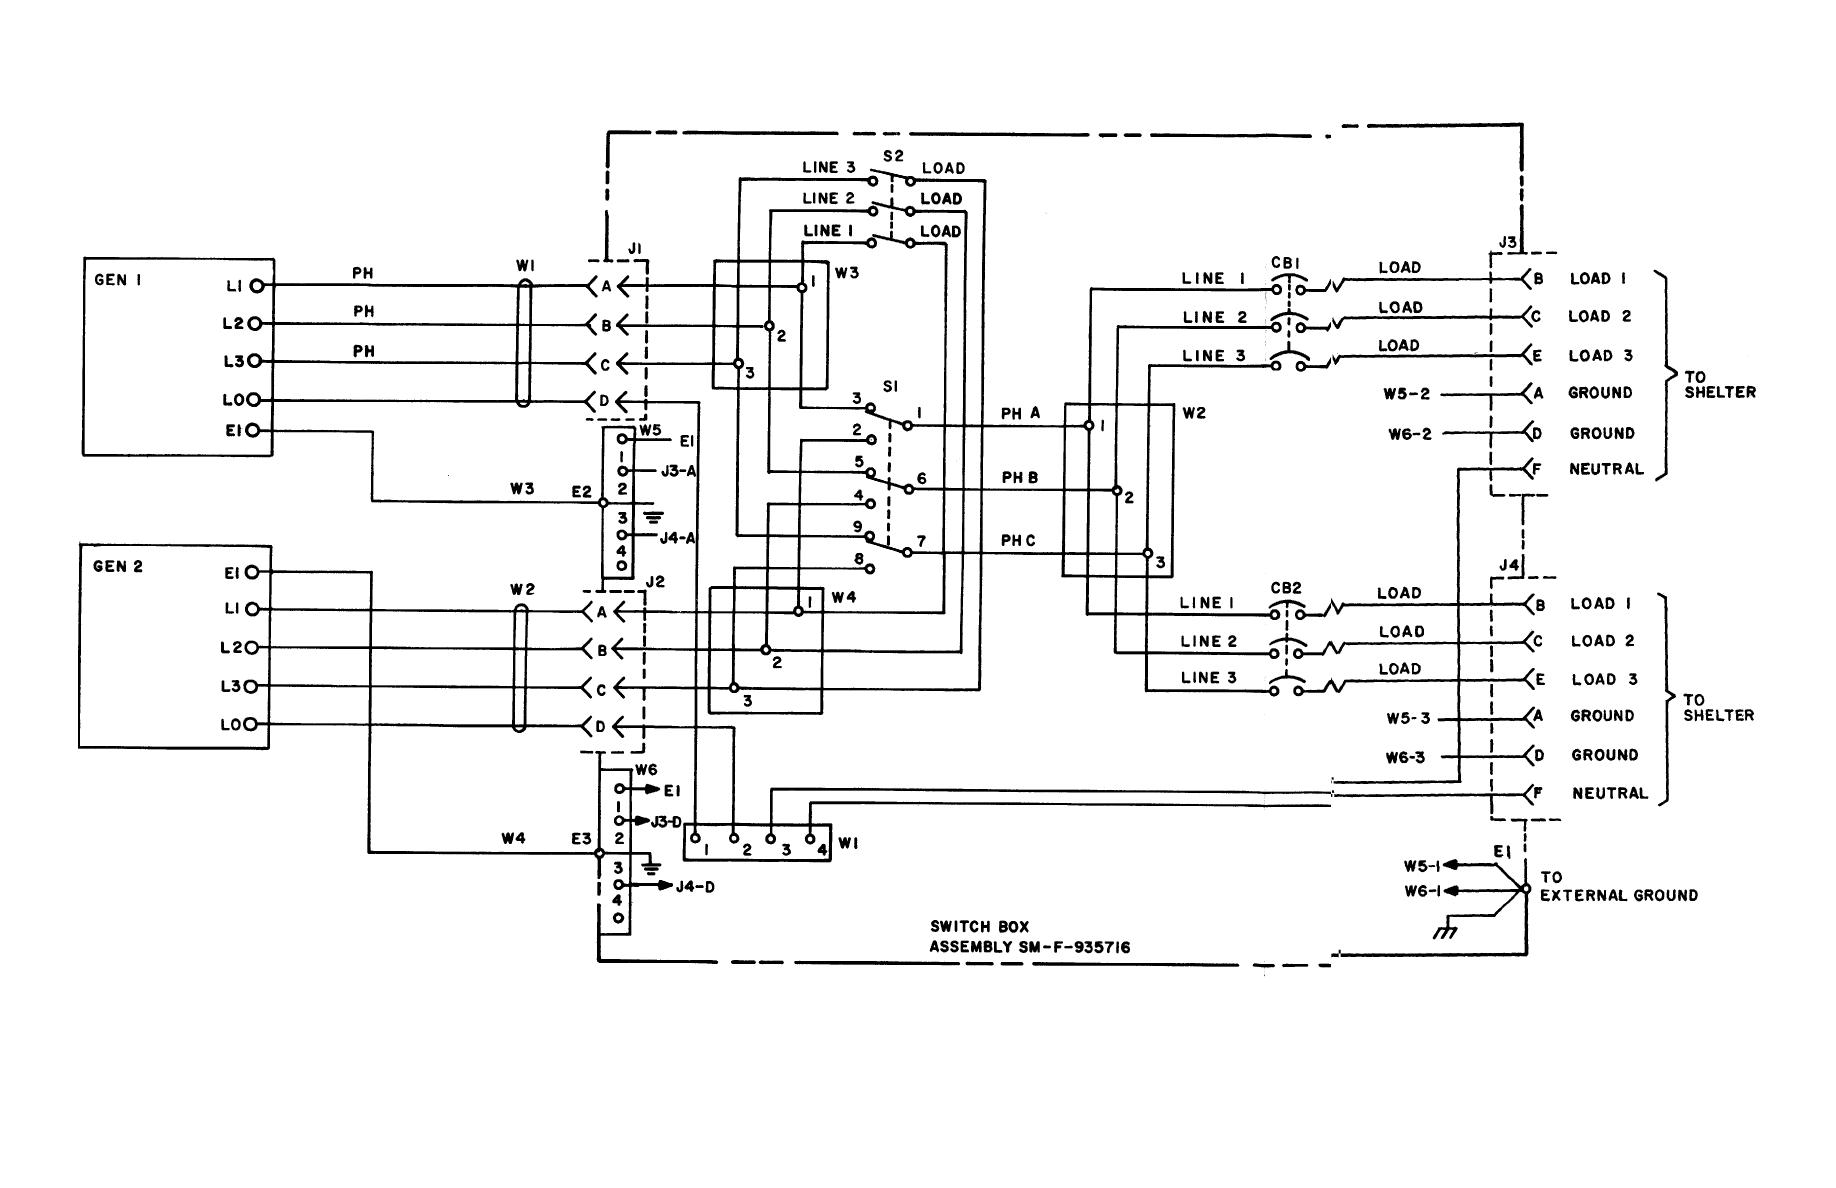 Schematic Wiring Diagram Fantastic Fan Wiring Diagram